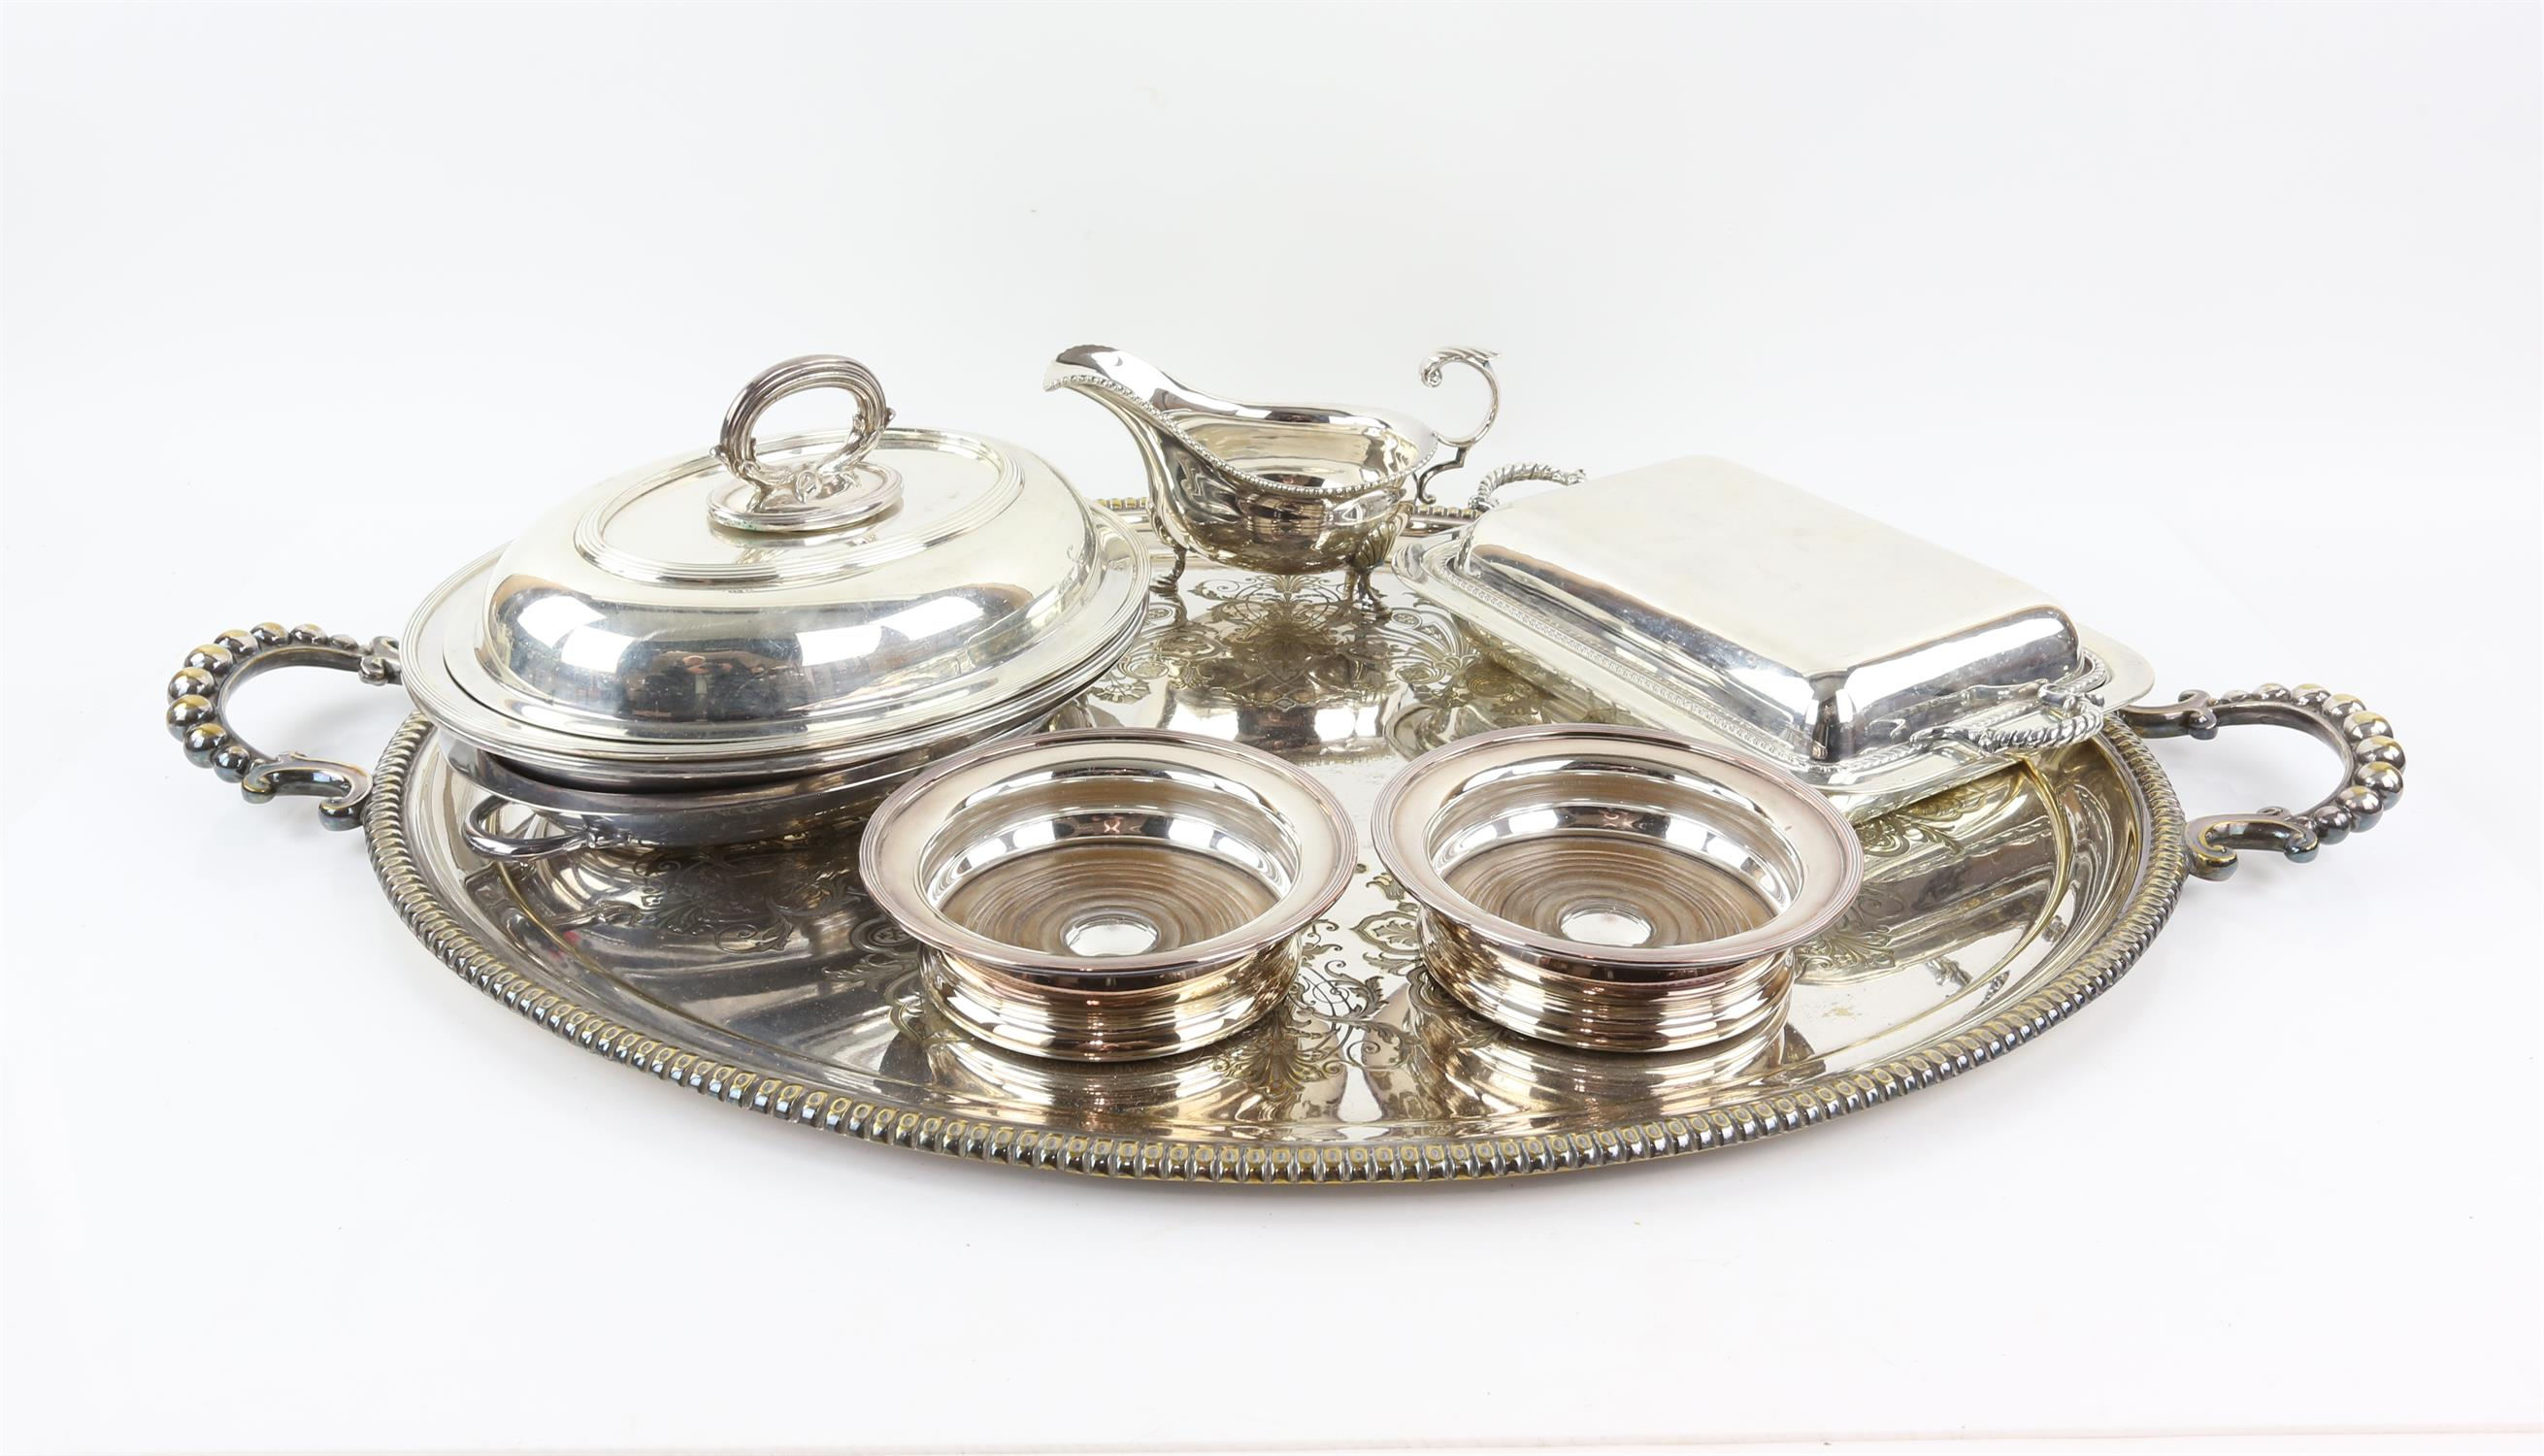 Silver plated twin-handled tray with beaded border, 77cm wide, pair of bottle holders,